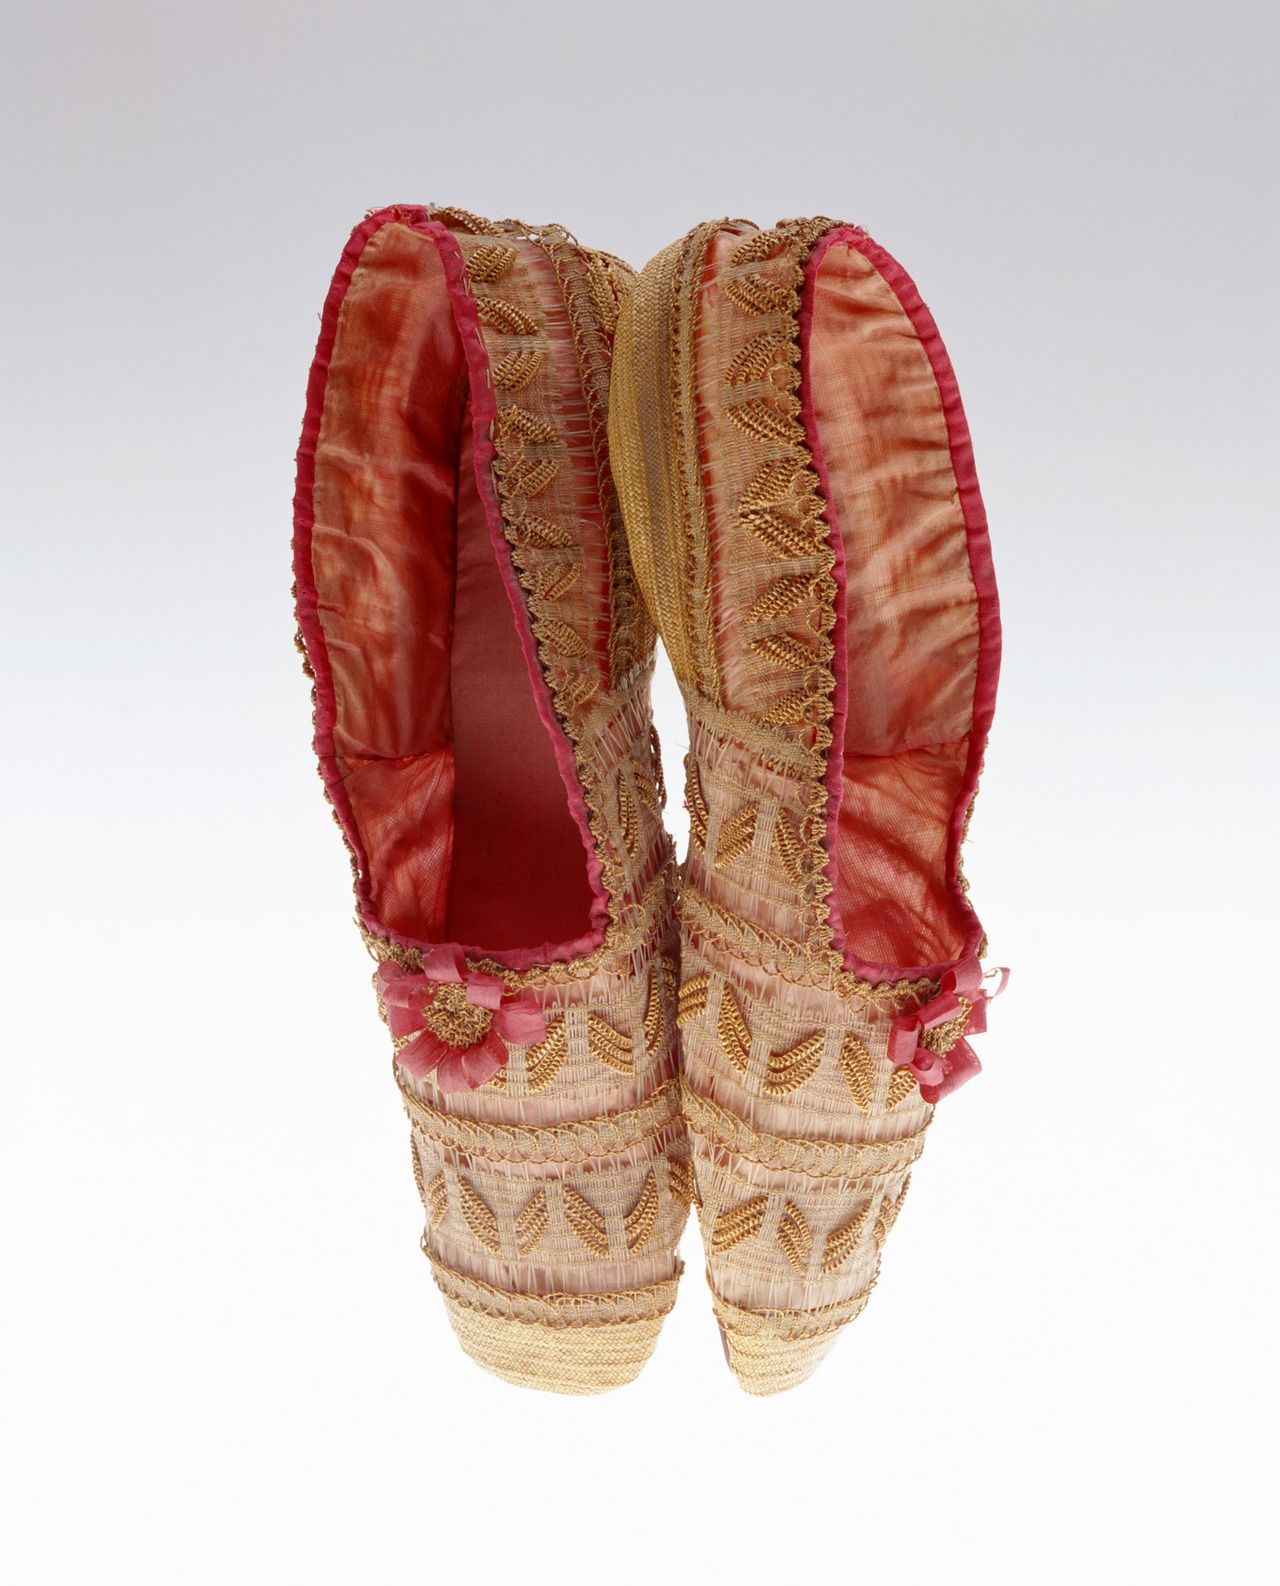 Slippers 1830s The Kyoto Costume Institute